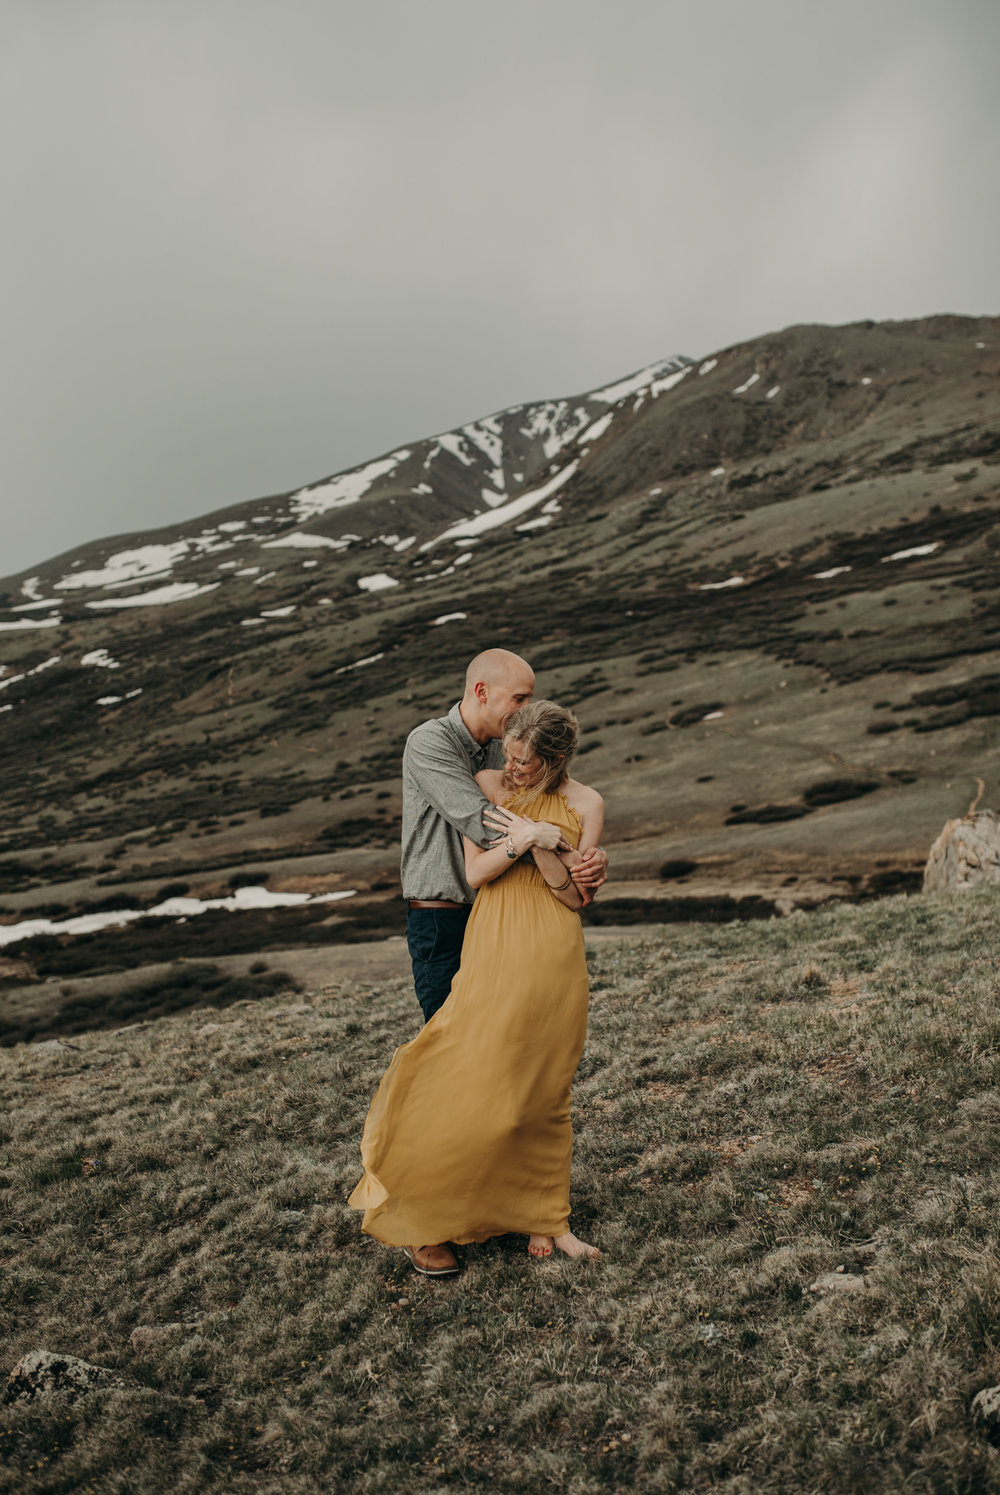 Colorado adventure elopement at Guanella Pass. Colorado elopement photographer.